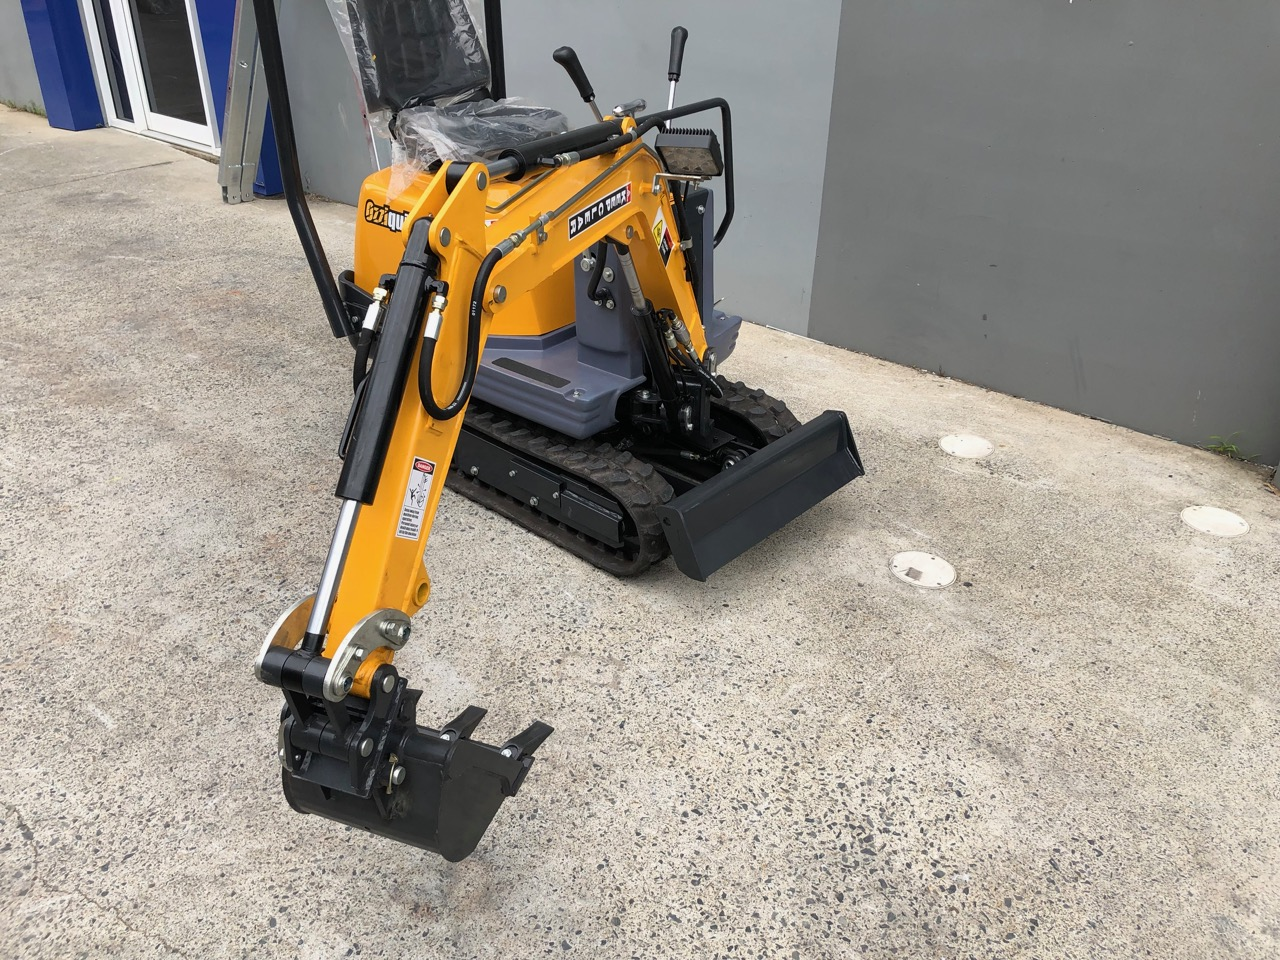 Ozziquip 700D Micro Excavator Yanmar Diesel with Offset Boom side view with extended arm | Featured image for 7 Types of Excavators and Their Uses | Blog